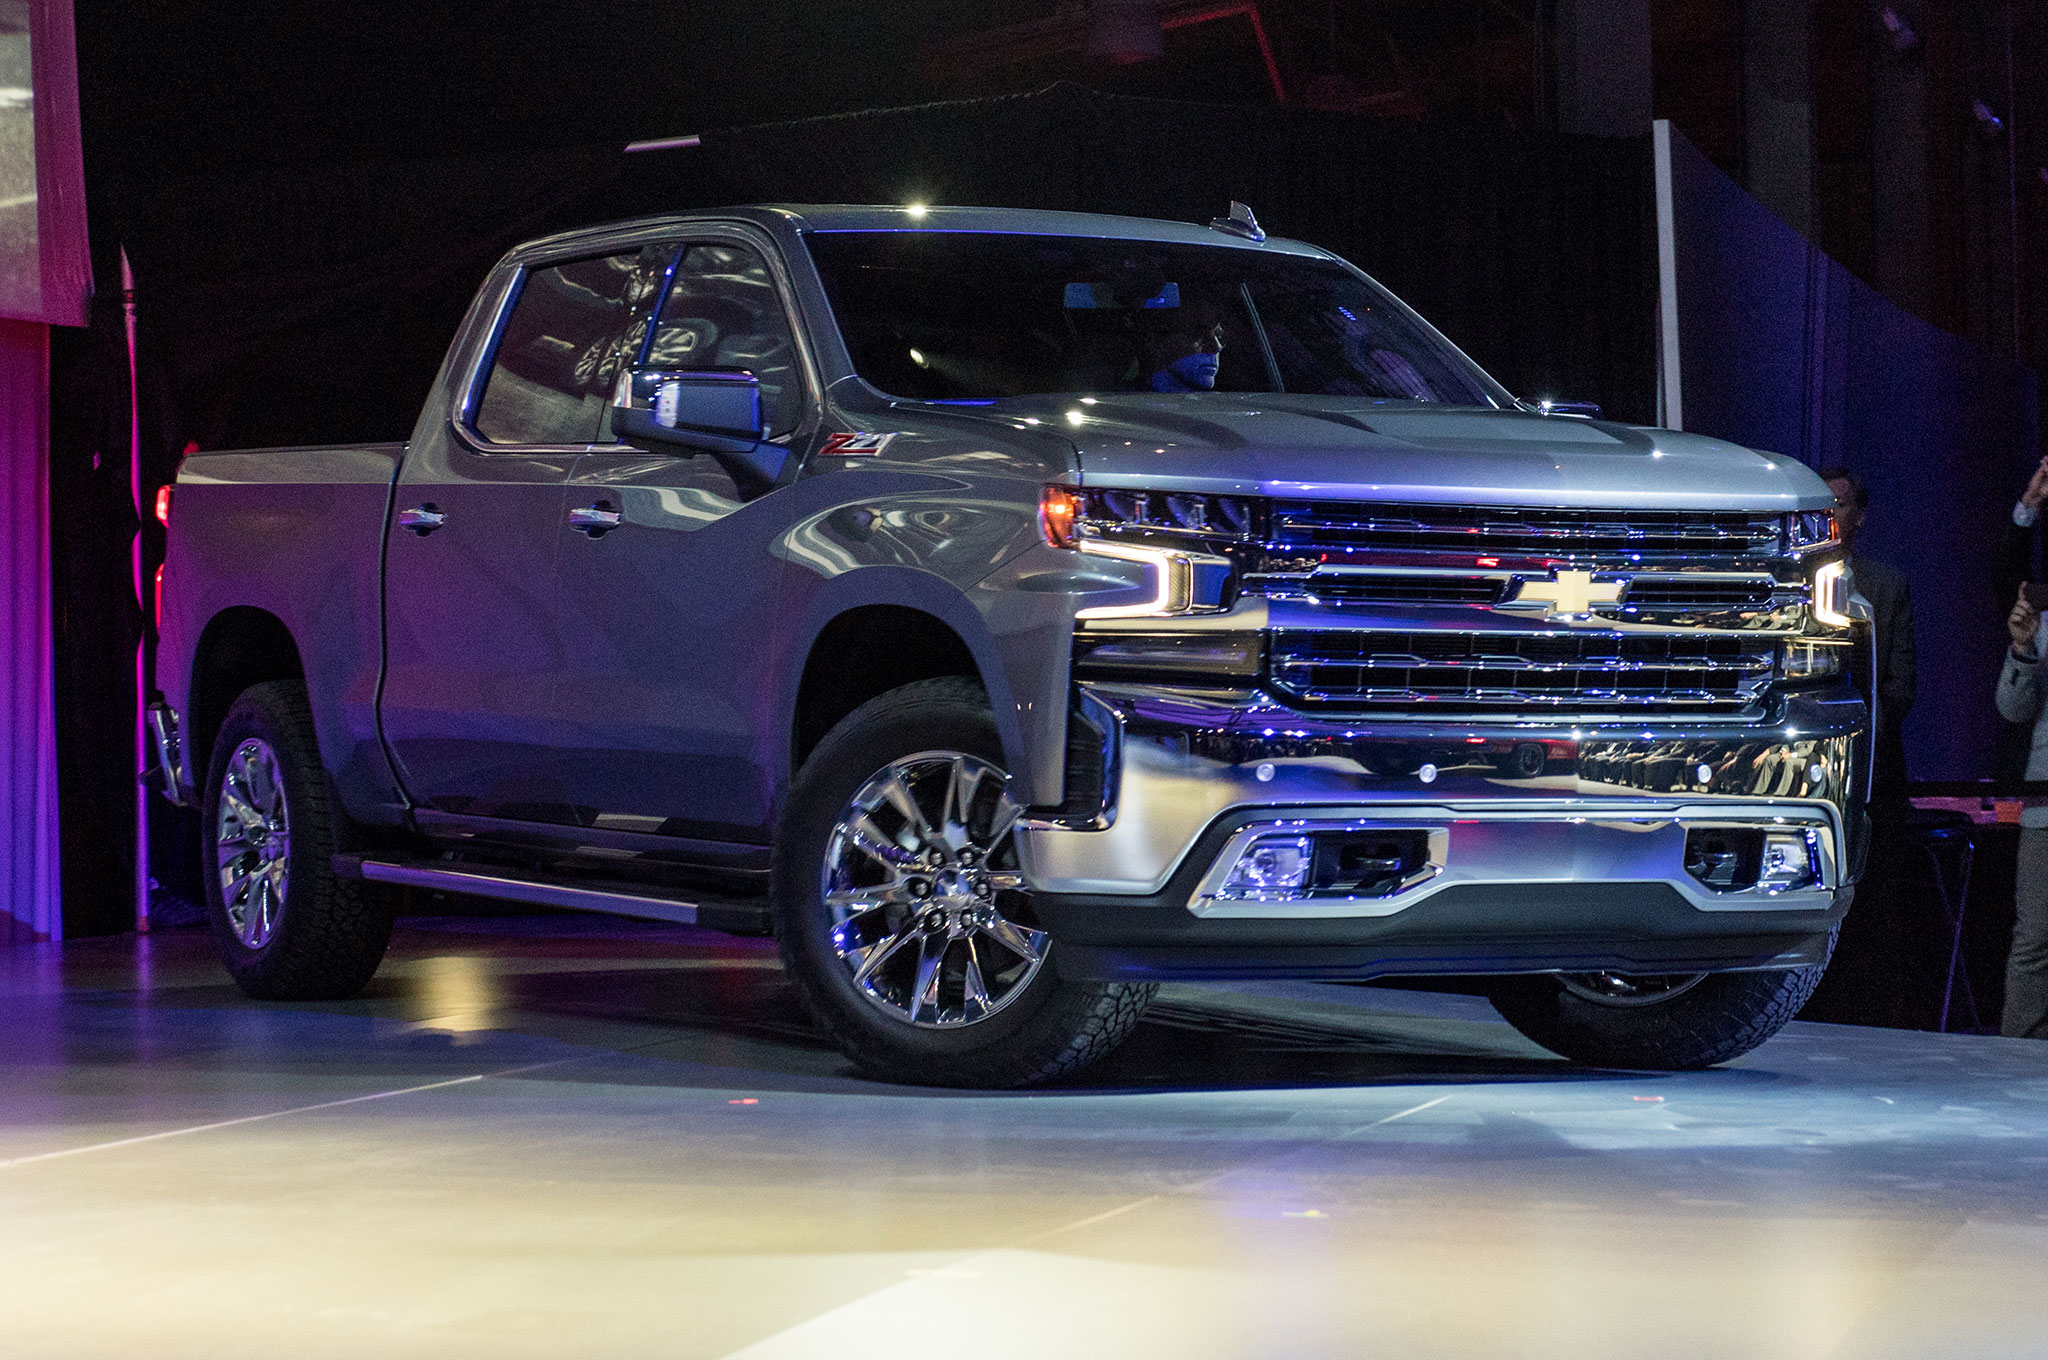 2019 Chevrolet Silverado 1500 LTZ Front Side View On Stage